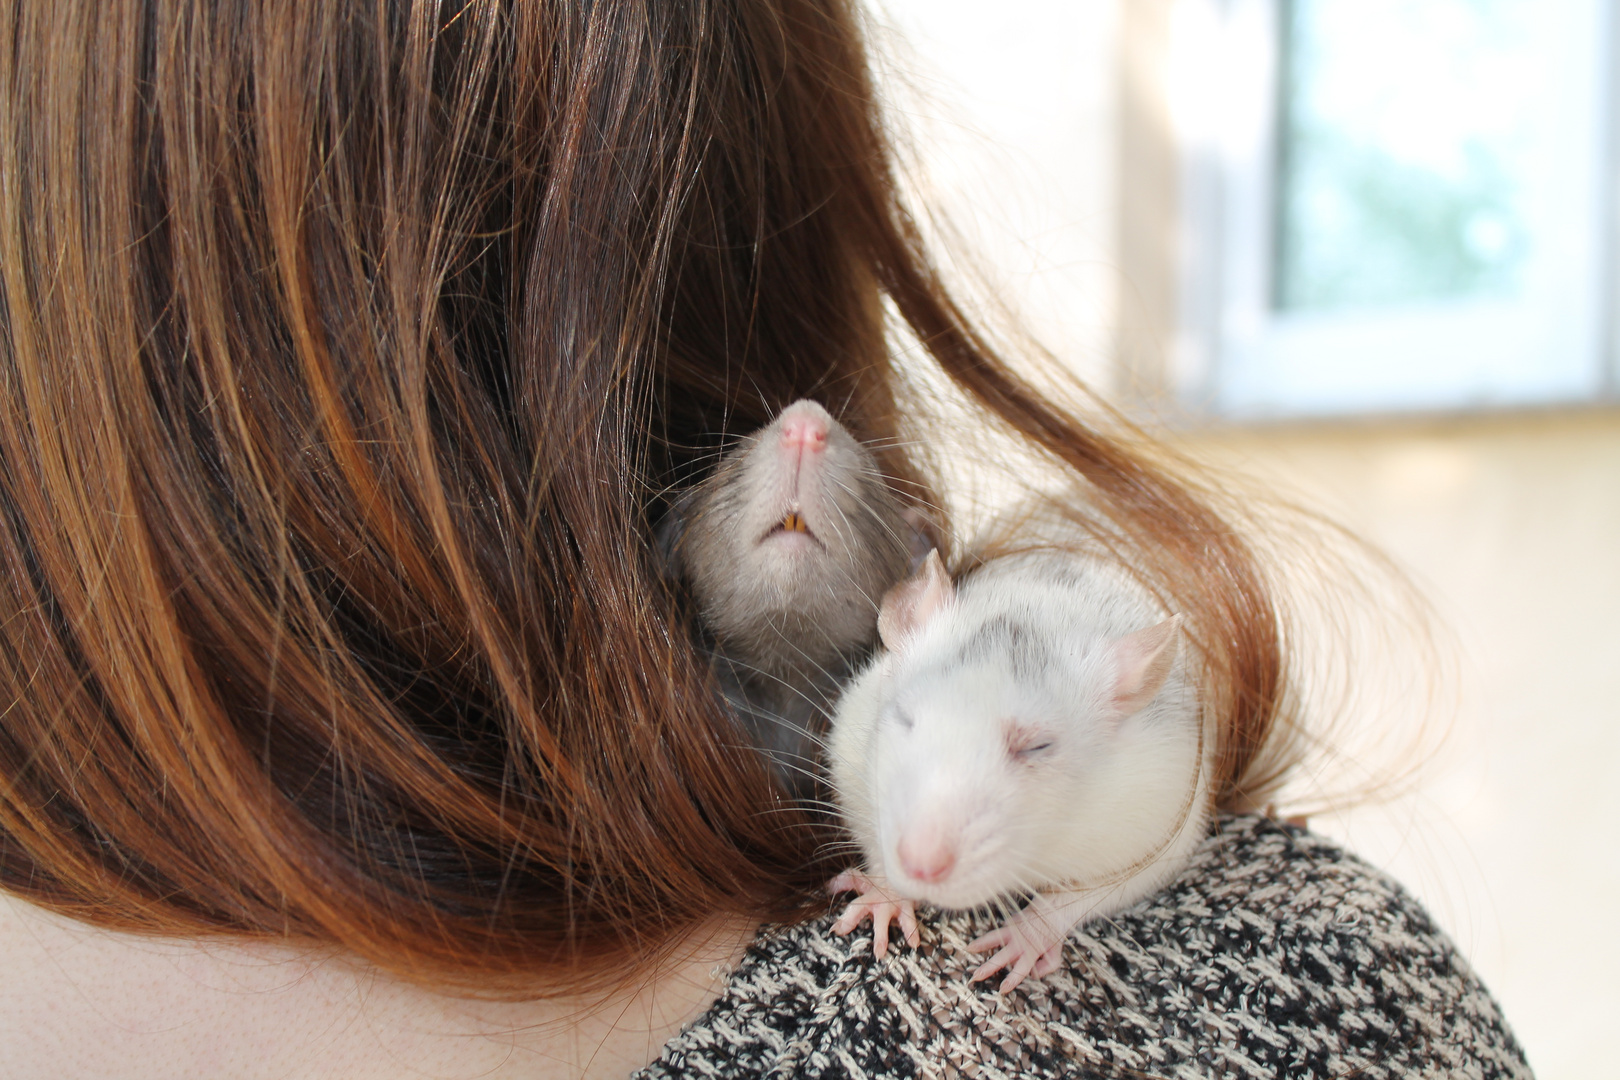 rats in hair